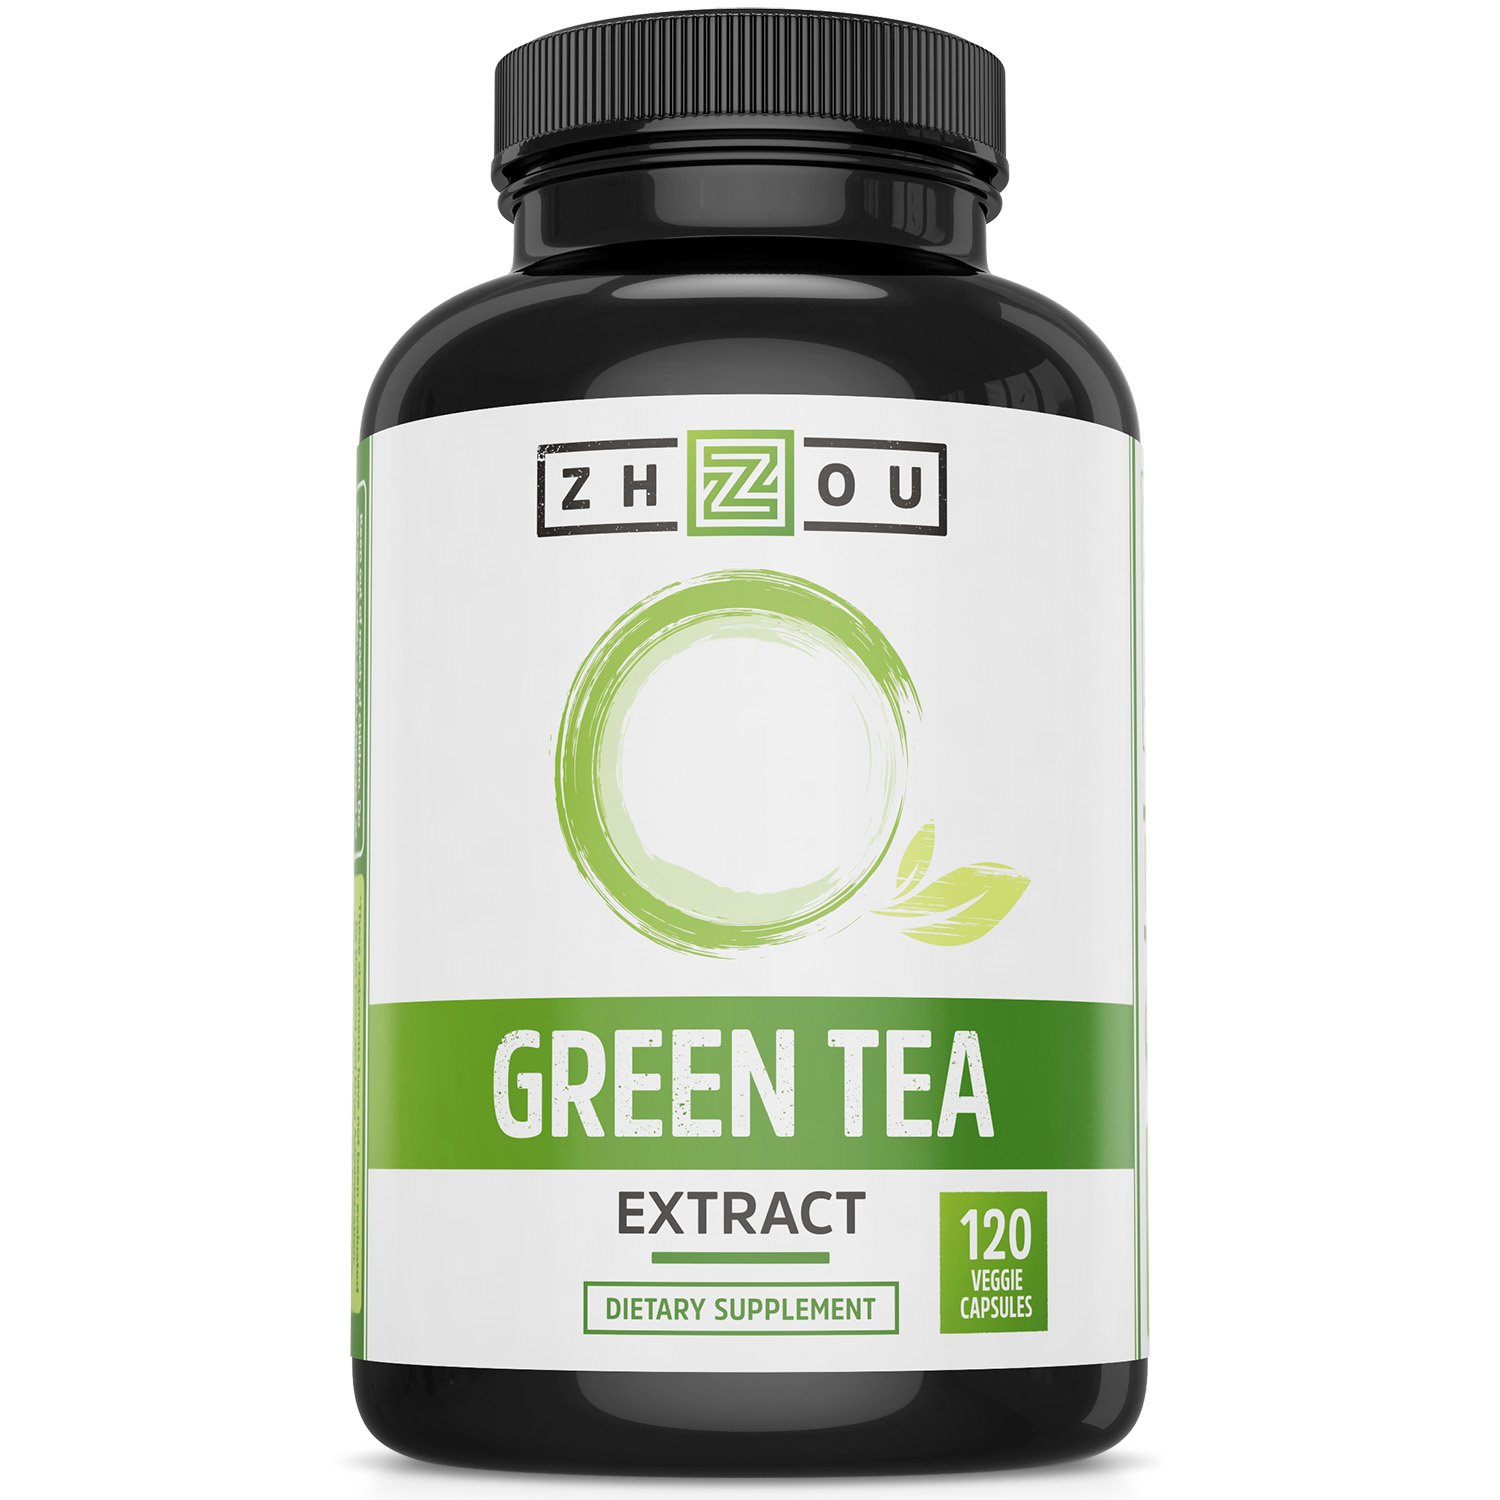 Green Tea Extract Supplement with EGCG for Weight Loss - Metabolism, Energy and Healthy Heart Formula - Gentle Caffeine Source - Antioxidant & Free Radical Scavenger - 120 Capsules